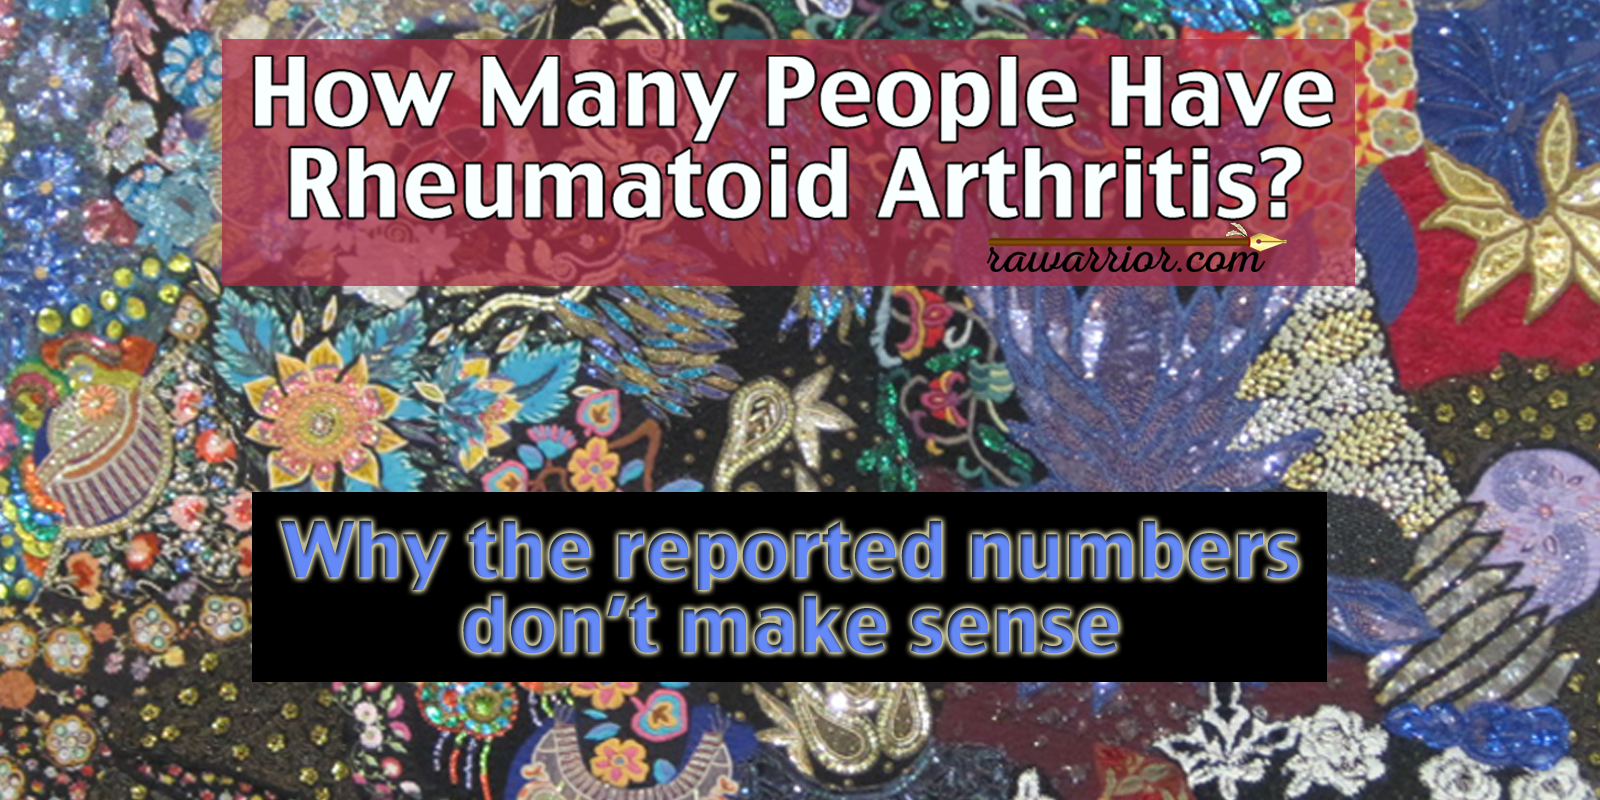 How Many People Have Rheumatoid Arthritis